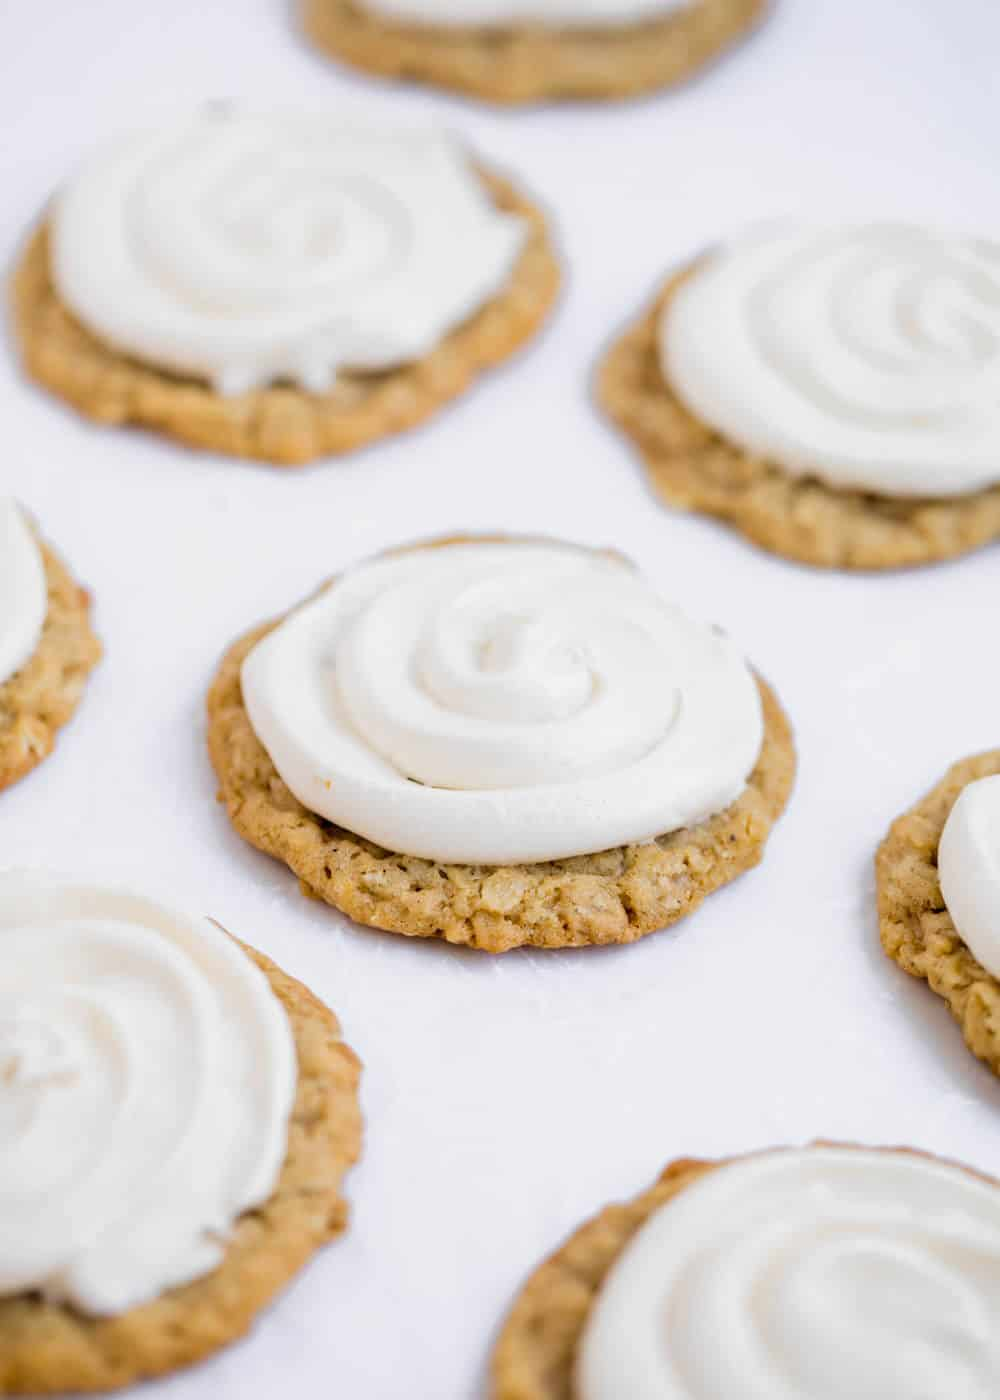 oatmeal cookies with marshmallow filling on top